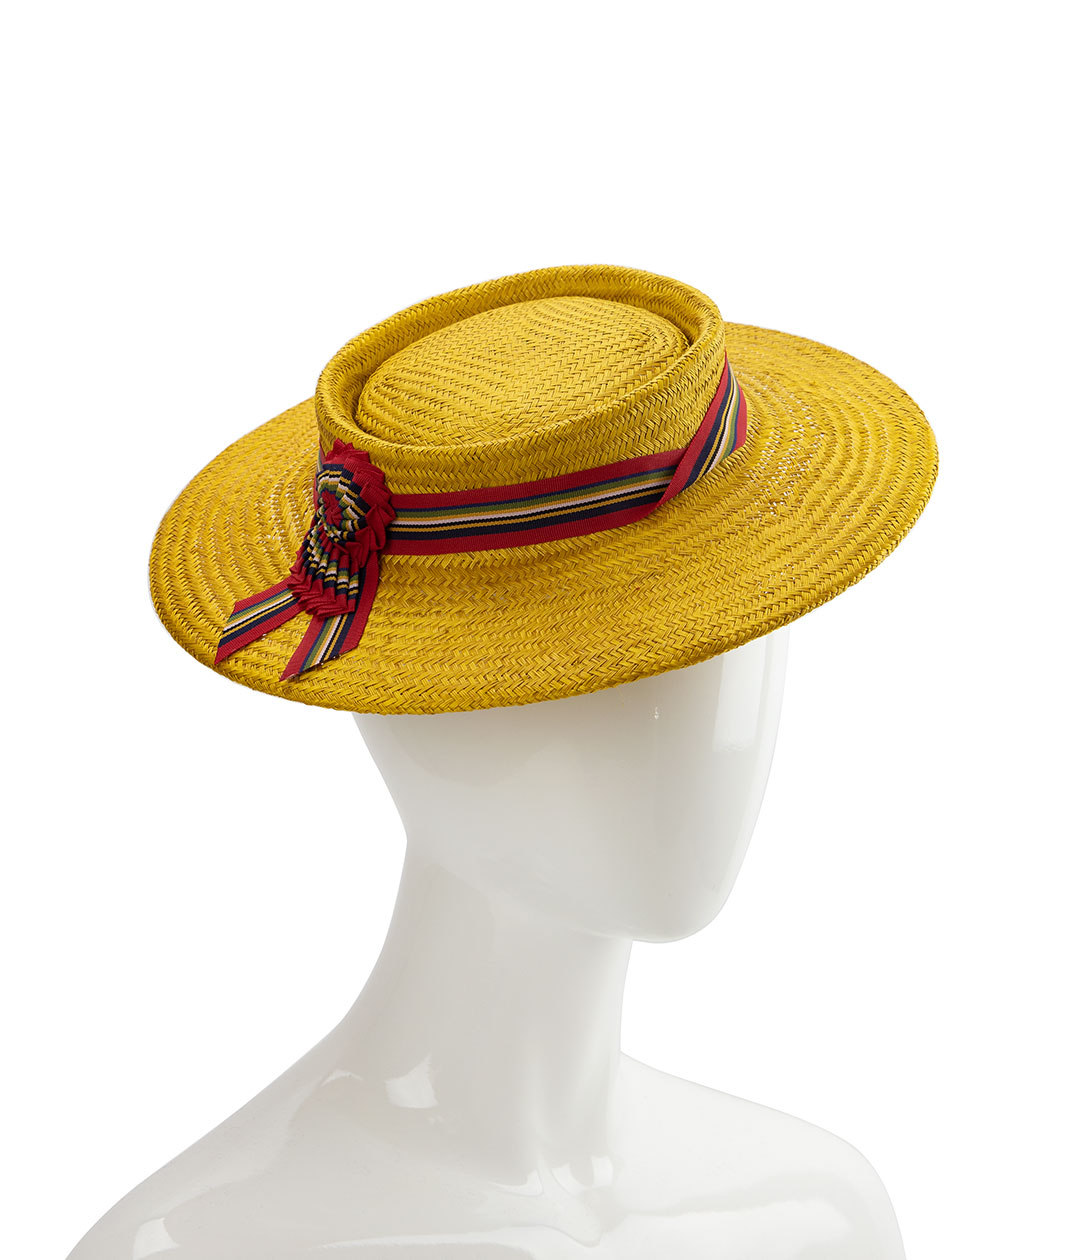 Yellow straw perching boater hat.